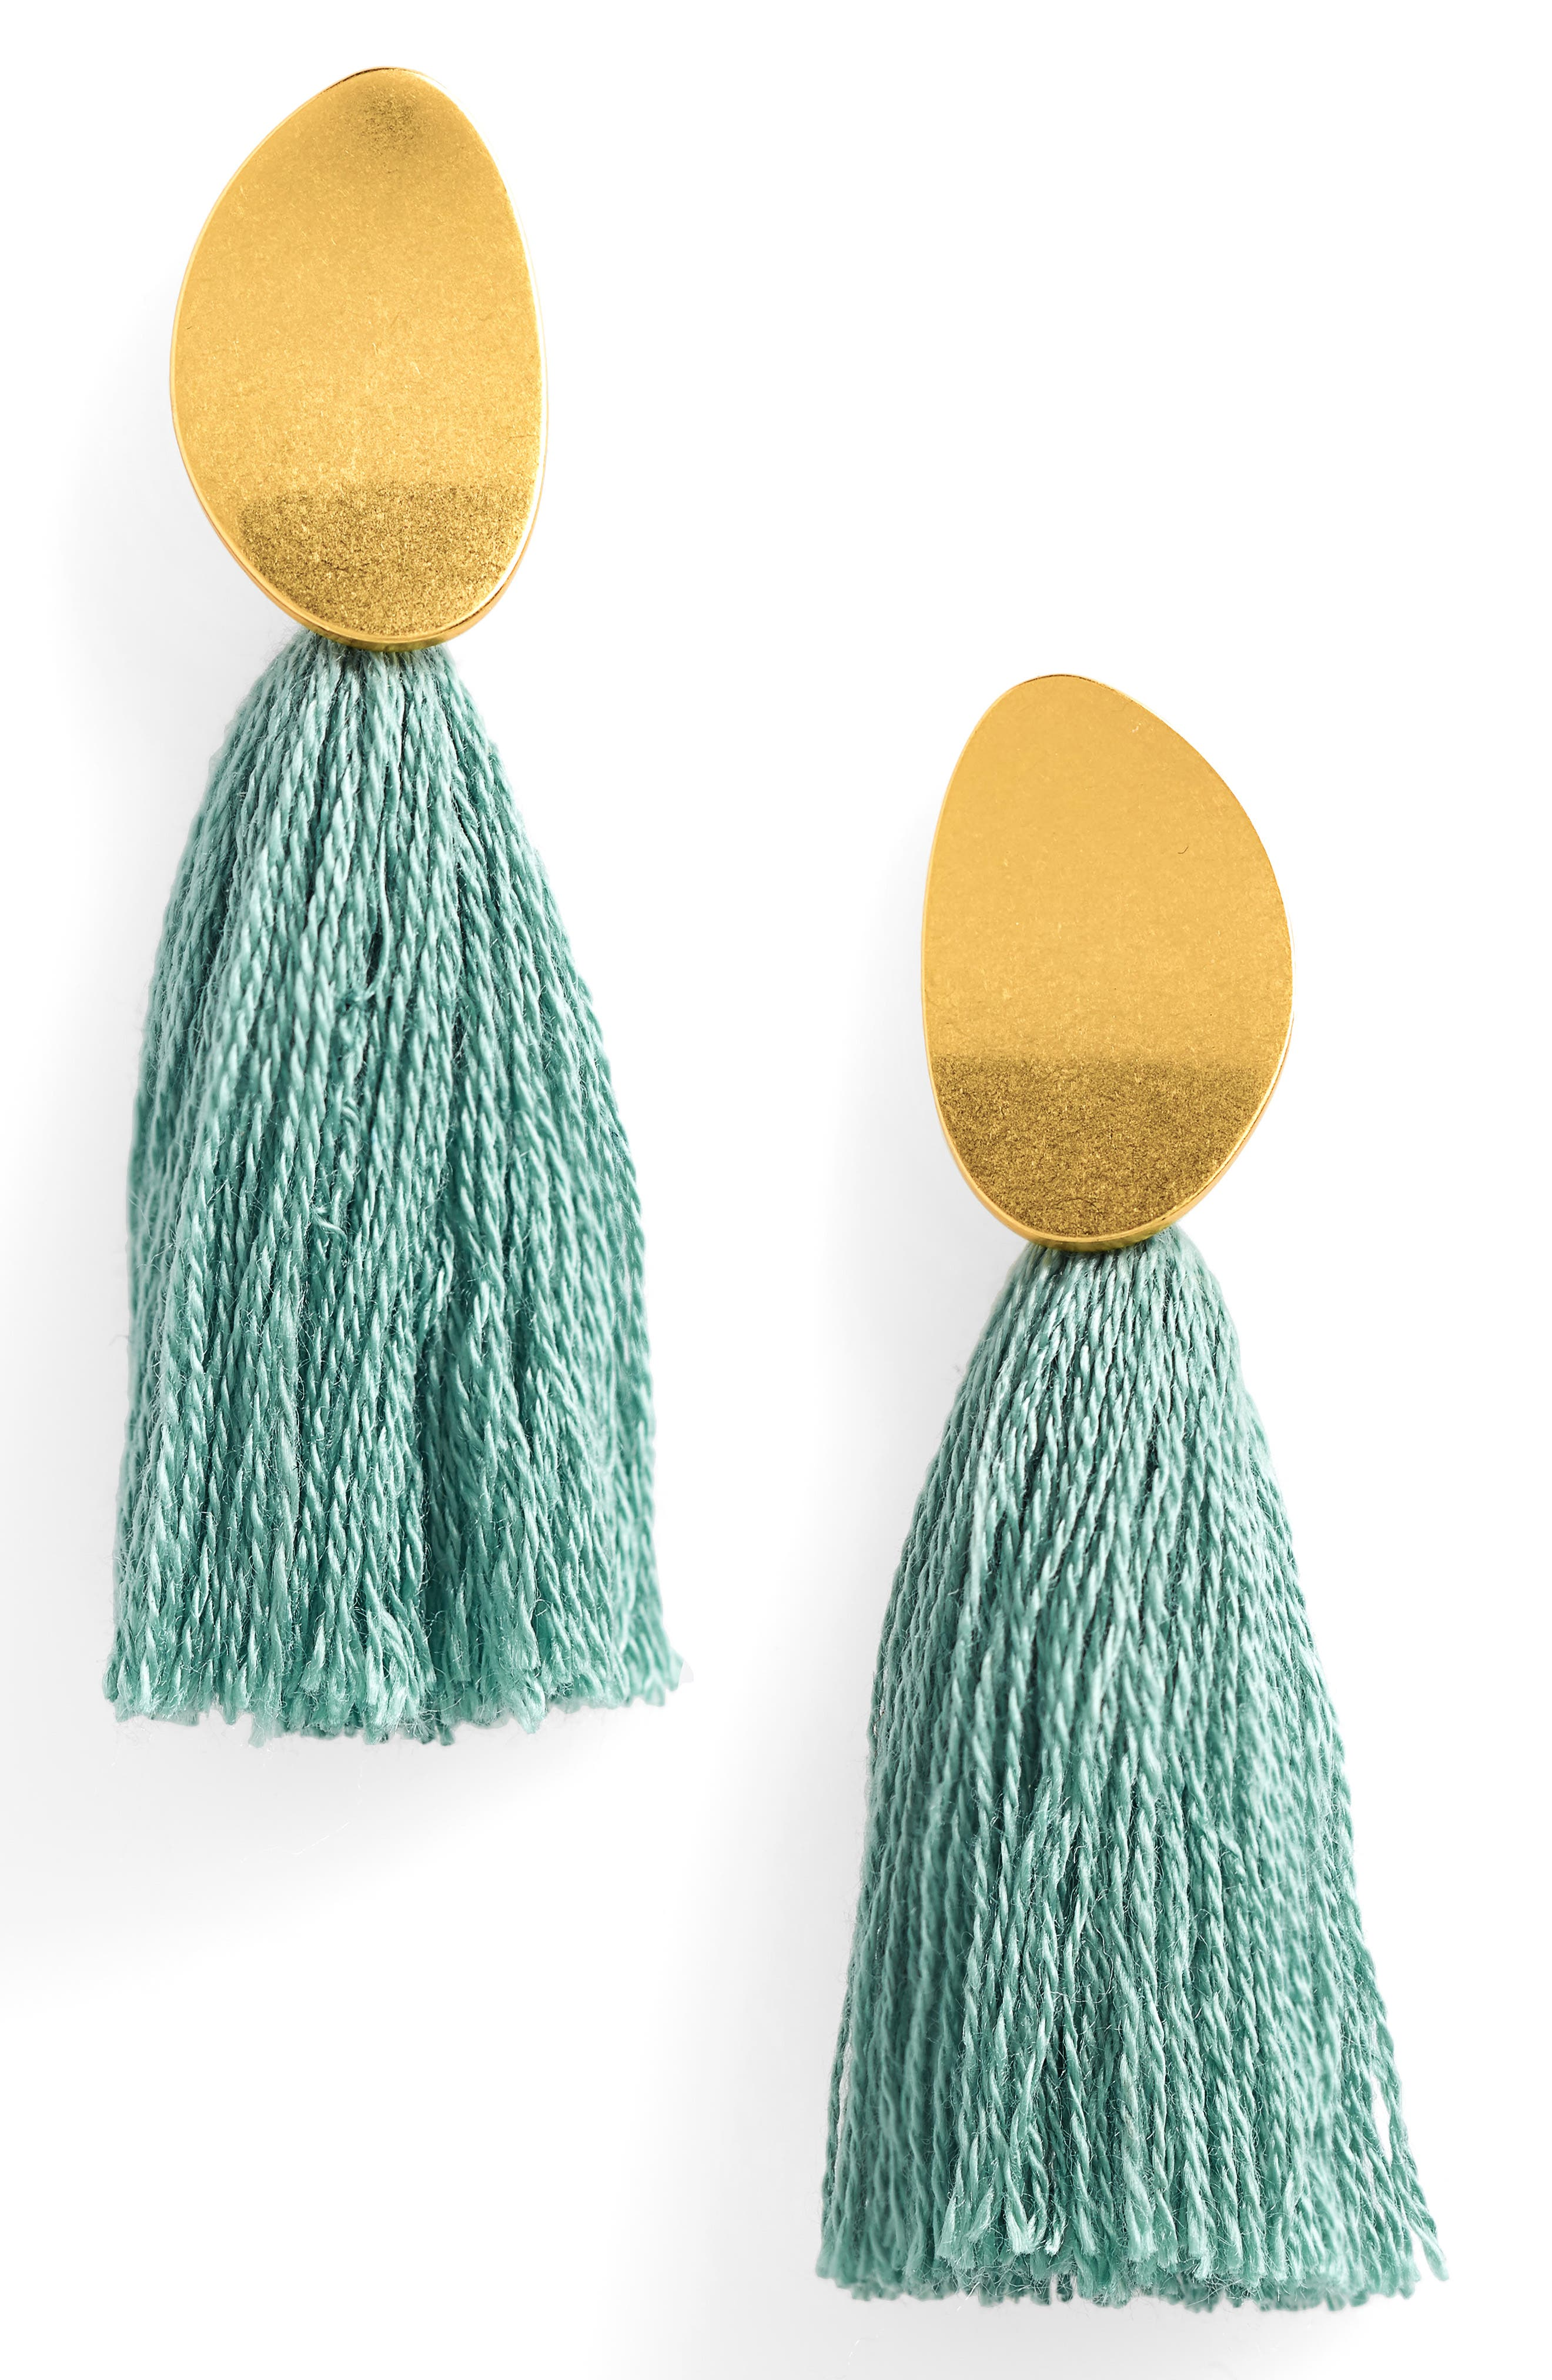 MADEWELL, Curved Tassel Earrings, Main thumbnail 1, color, 320